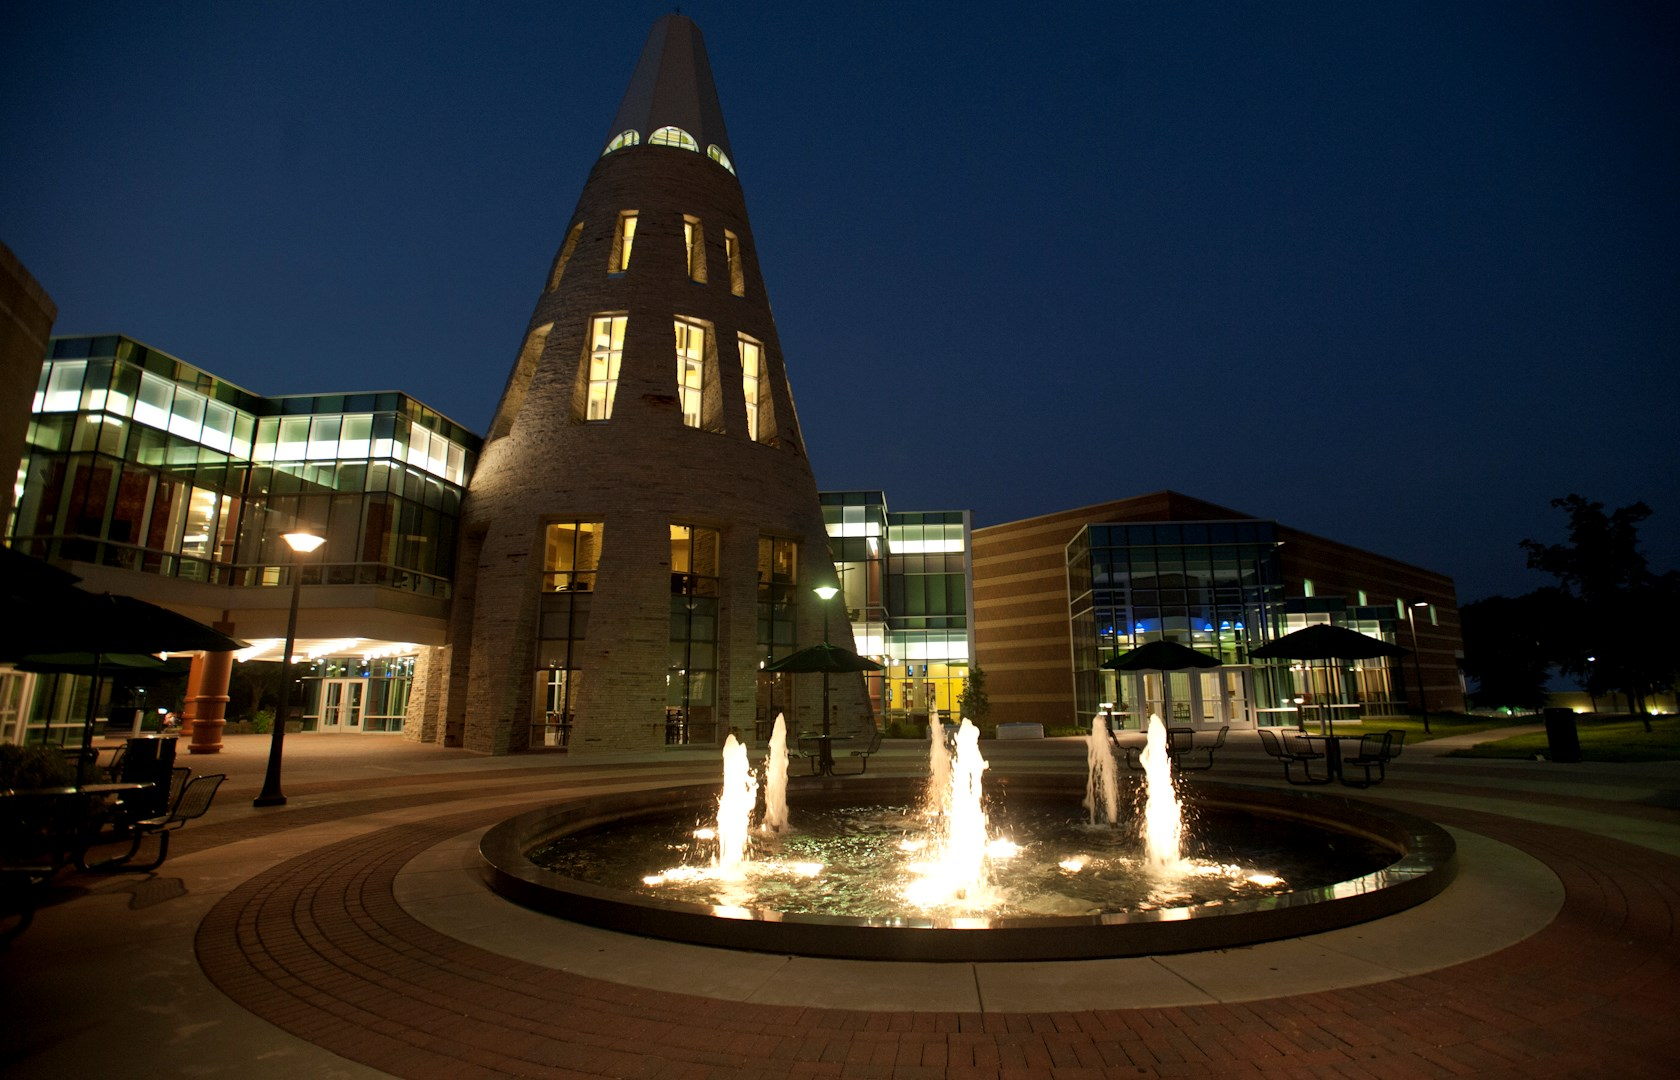 horiz_Rice Library with fountain at night